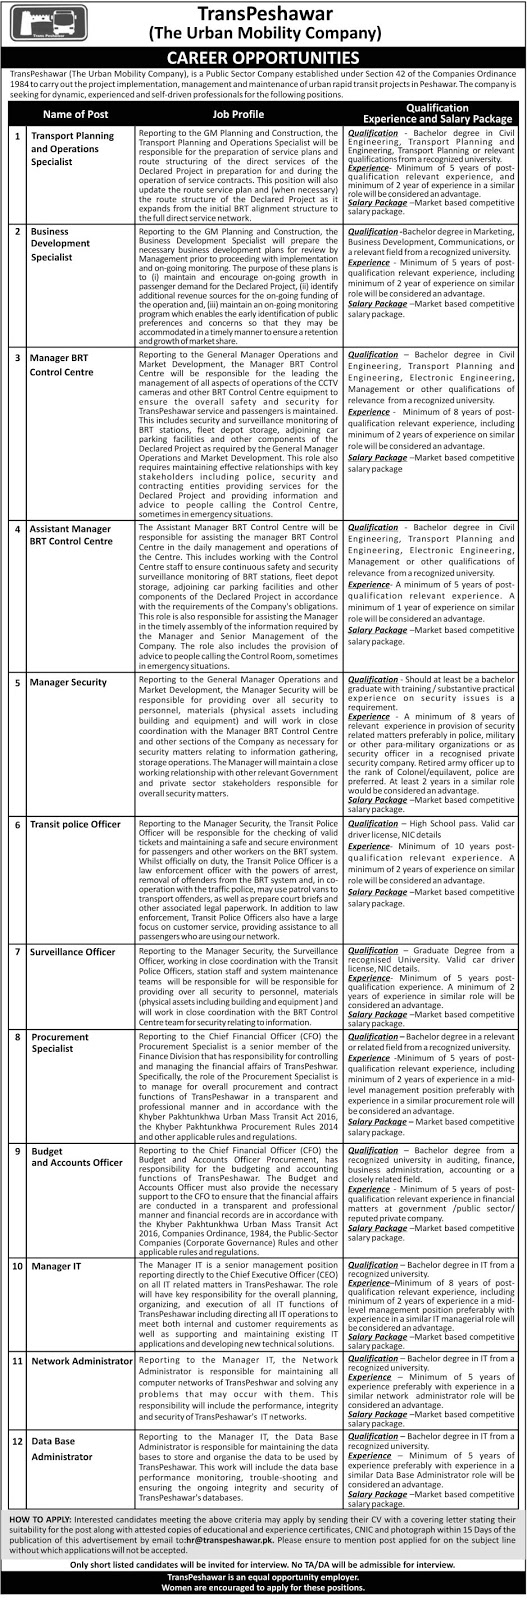 Jobs in Trans Peshawar The Urban Mobility Company, Online